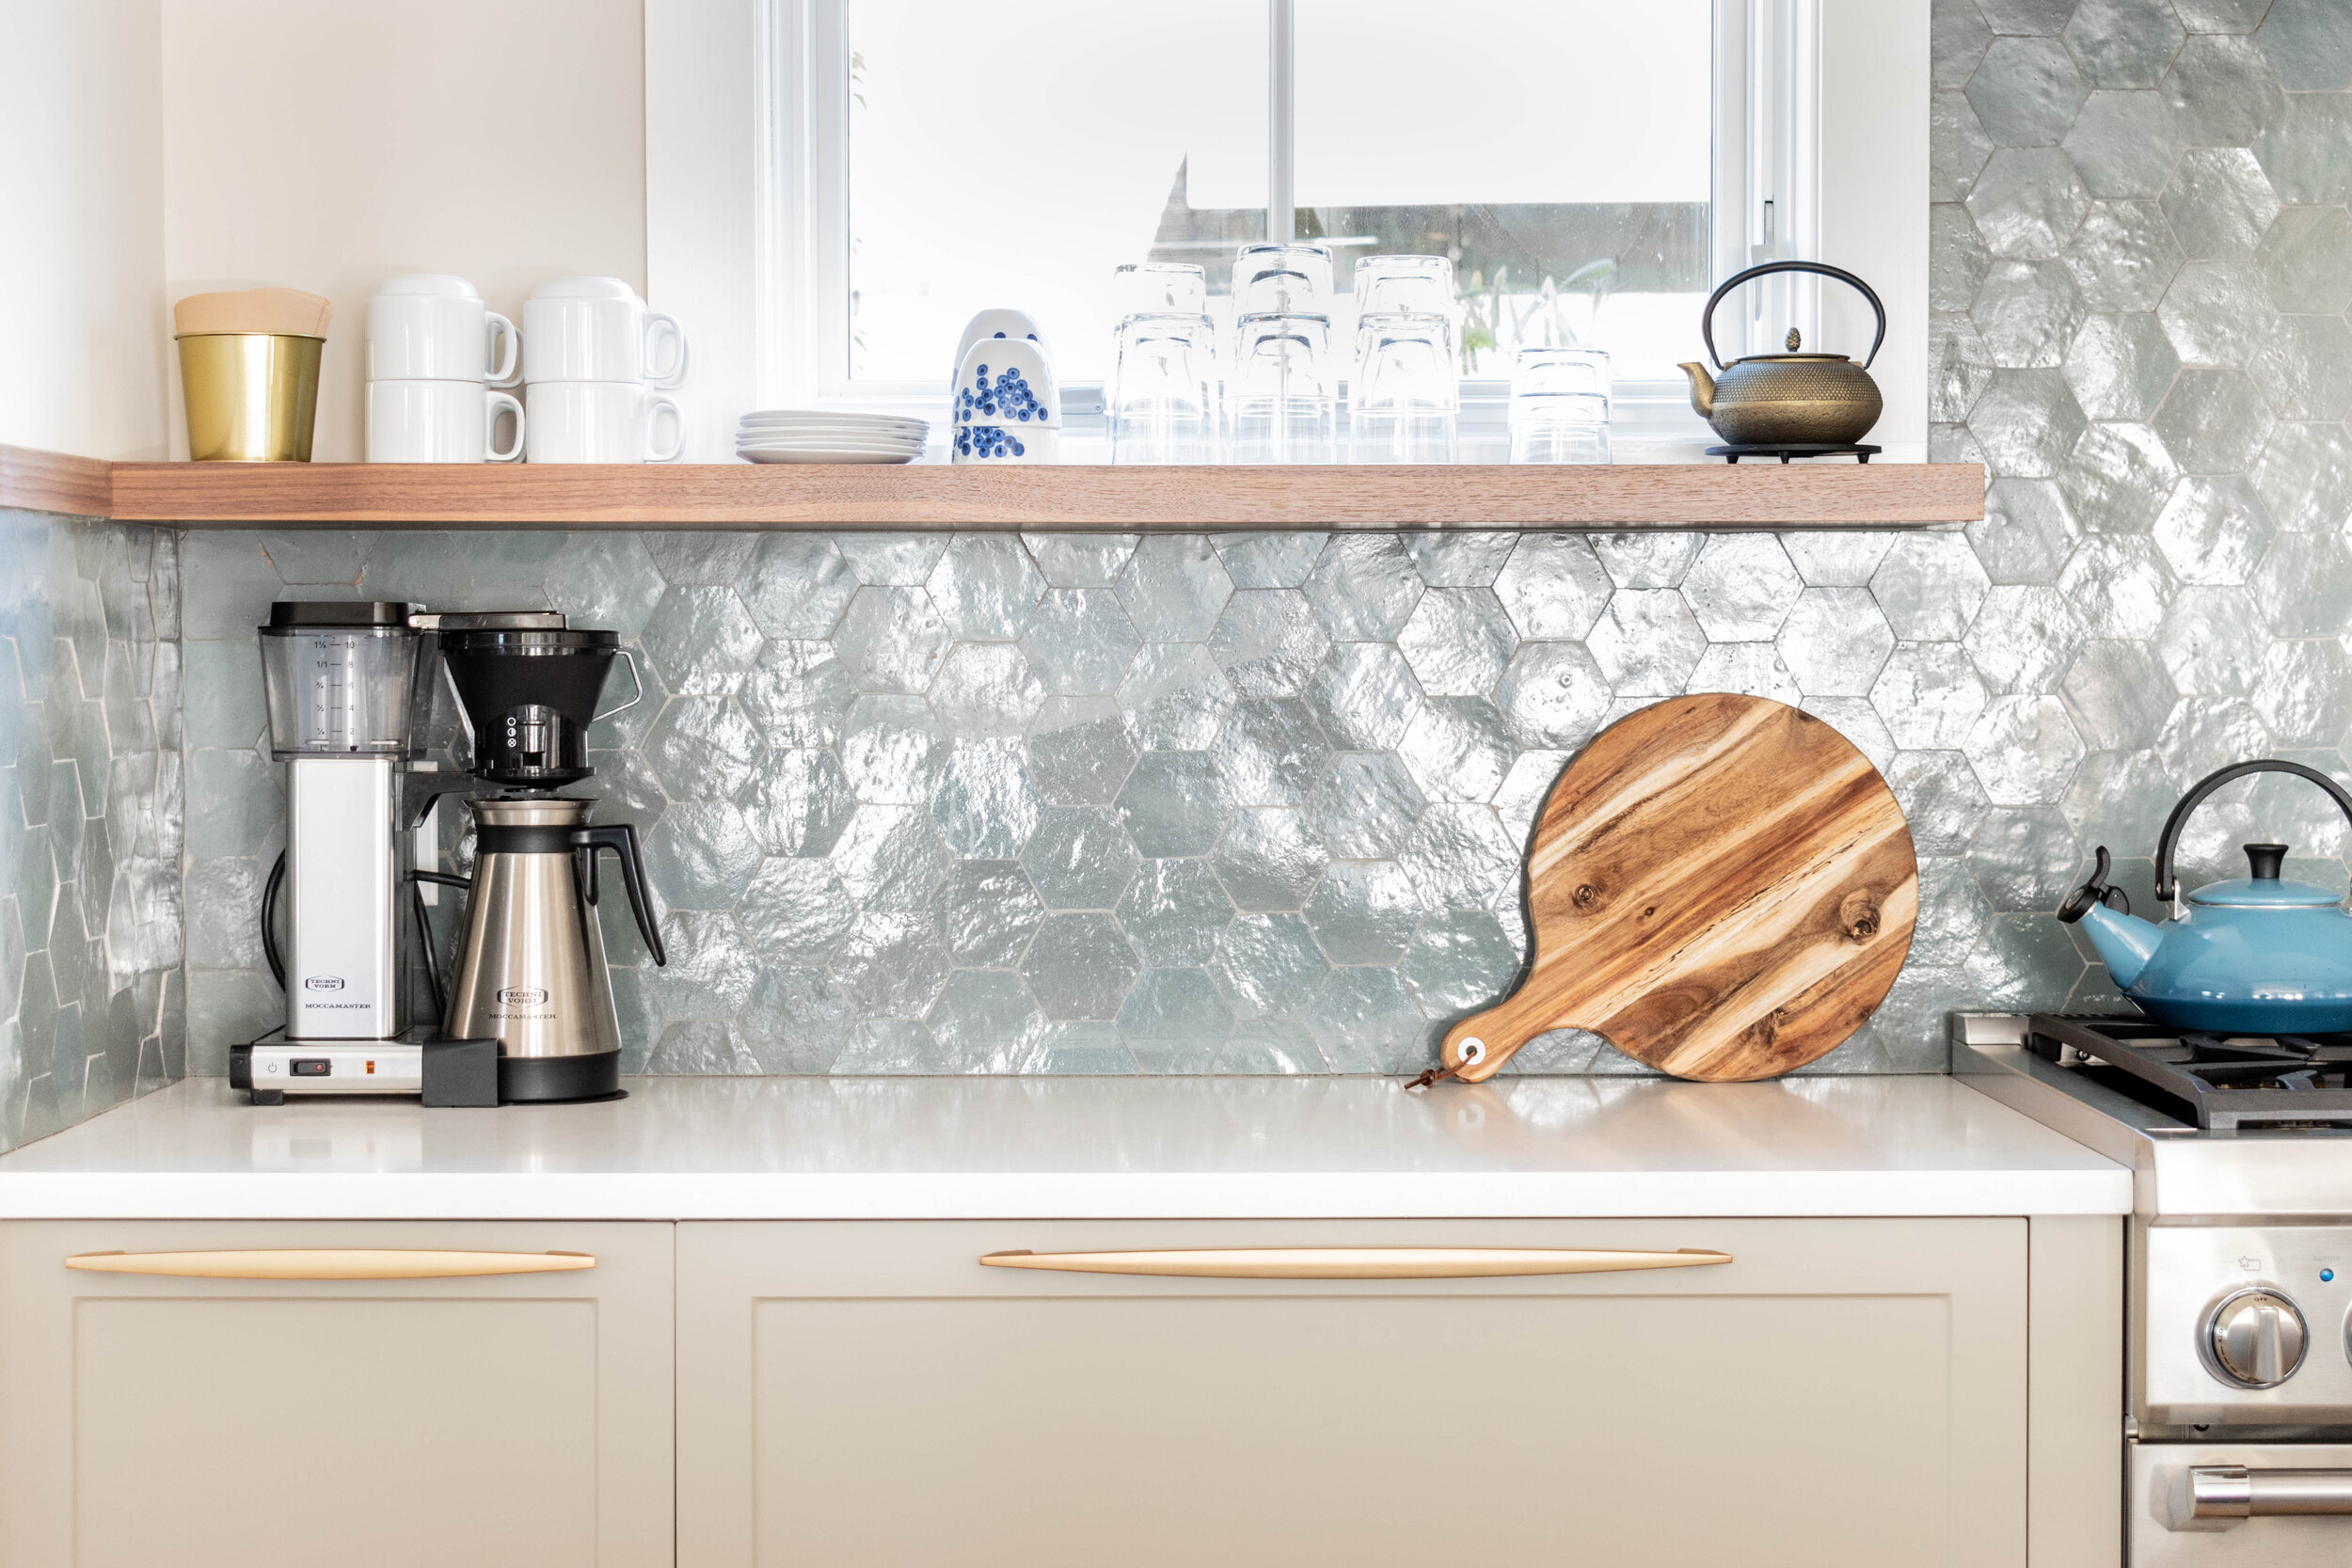 Material: Q-MSI Calico White  Thickness, Finish & Stone Type: 3CM Polished Quartz  Edge: Eased  Sink: Clients Sink: Under-Mount